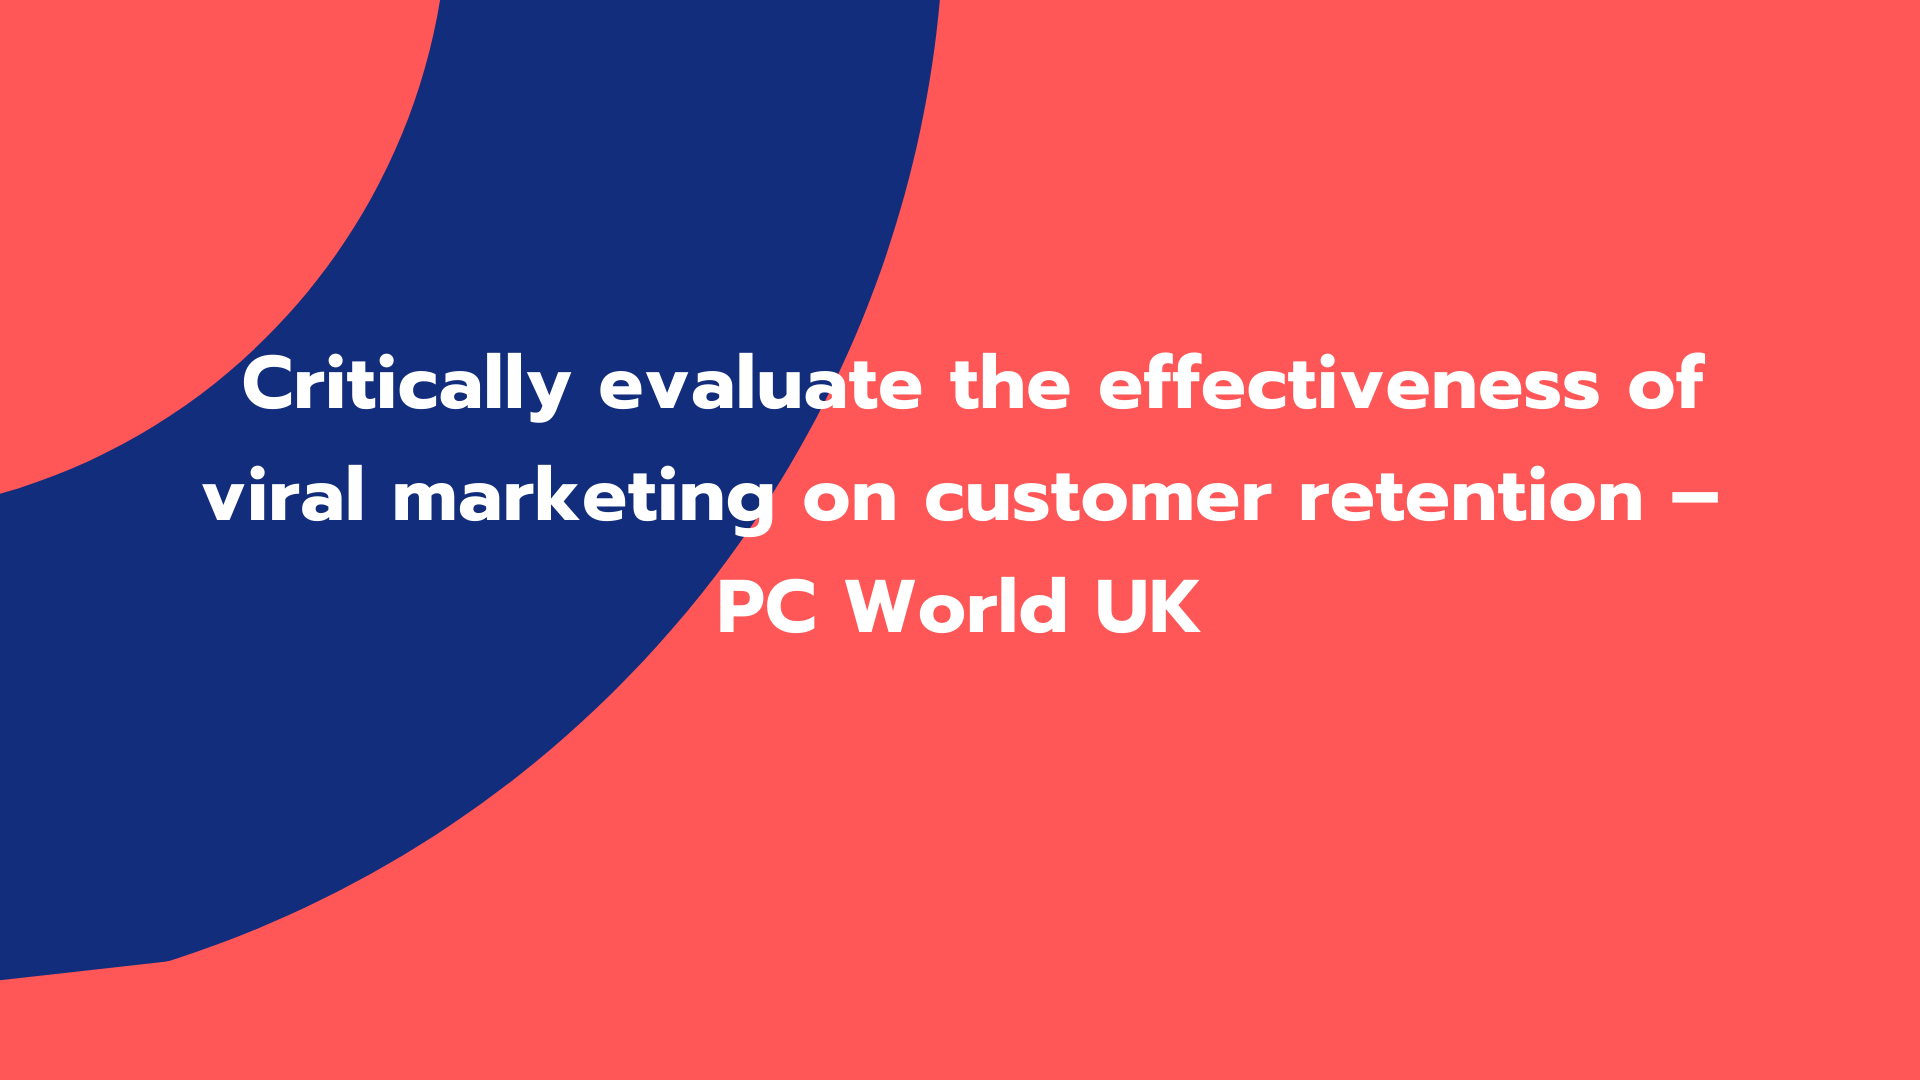 Critically evaluate the effectiveness of viral marketing on customer retention – PC World UK